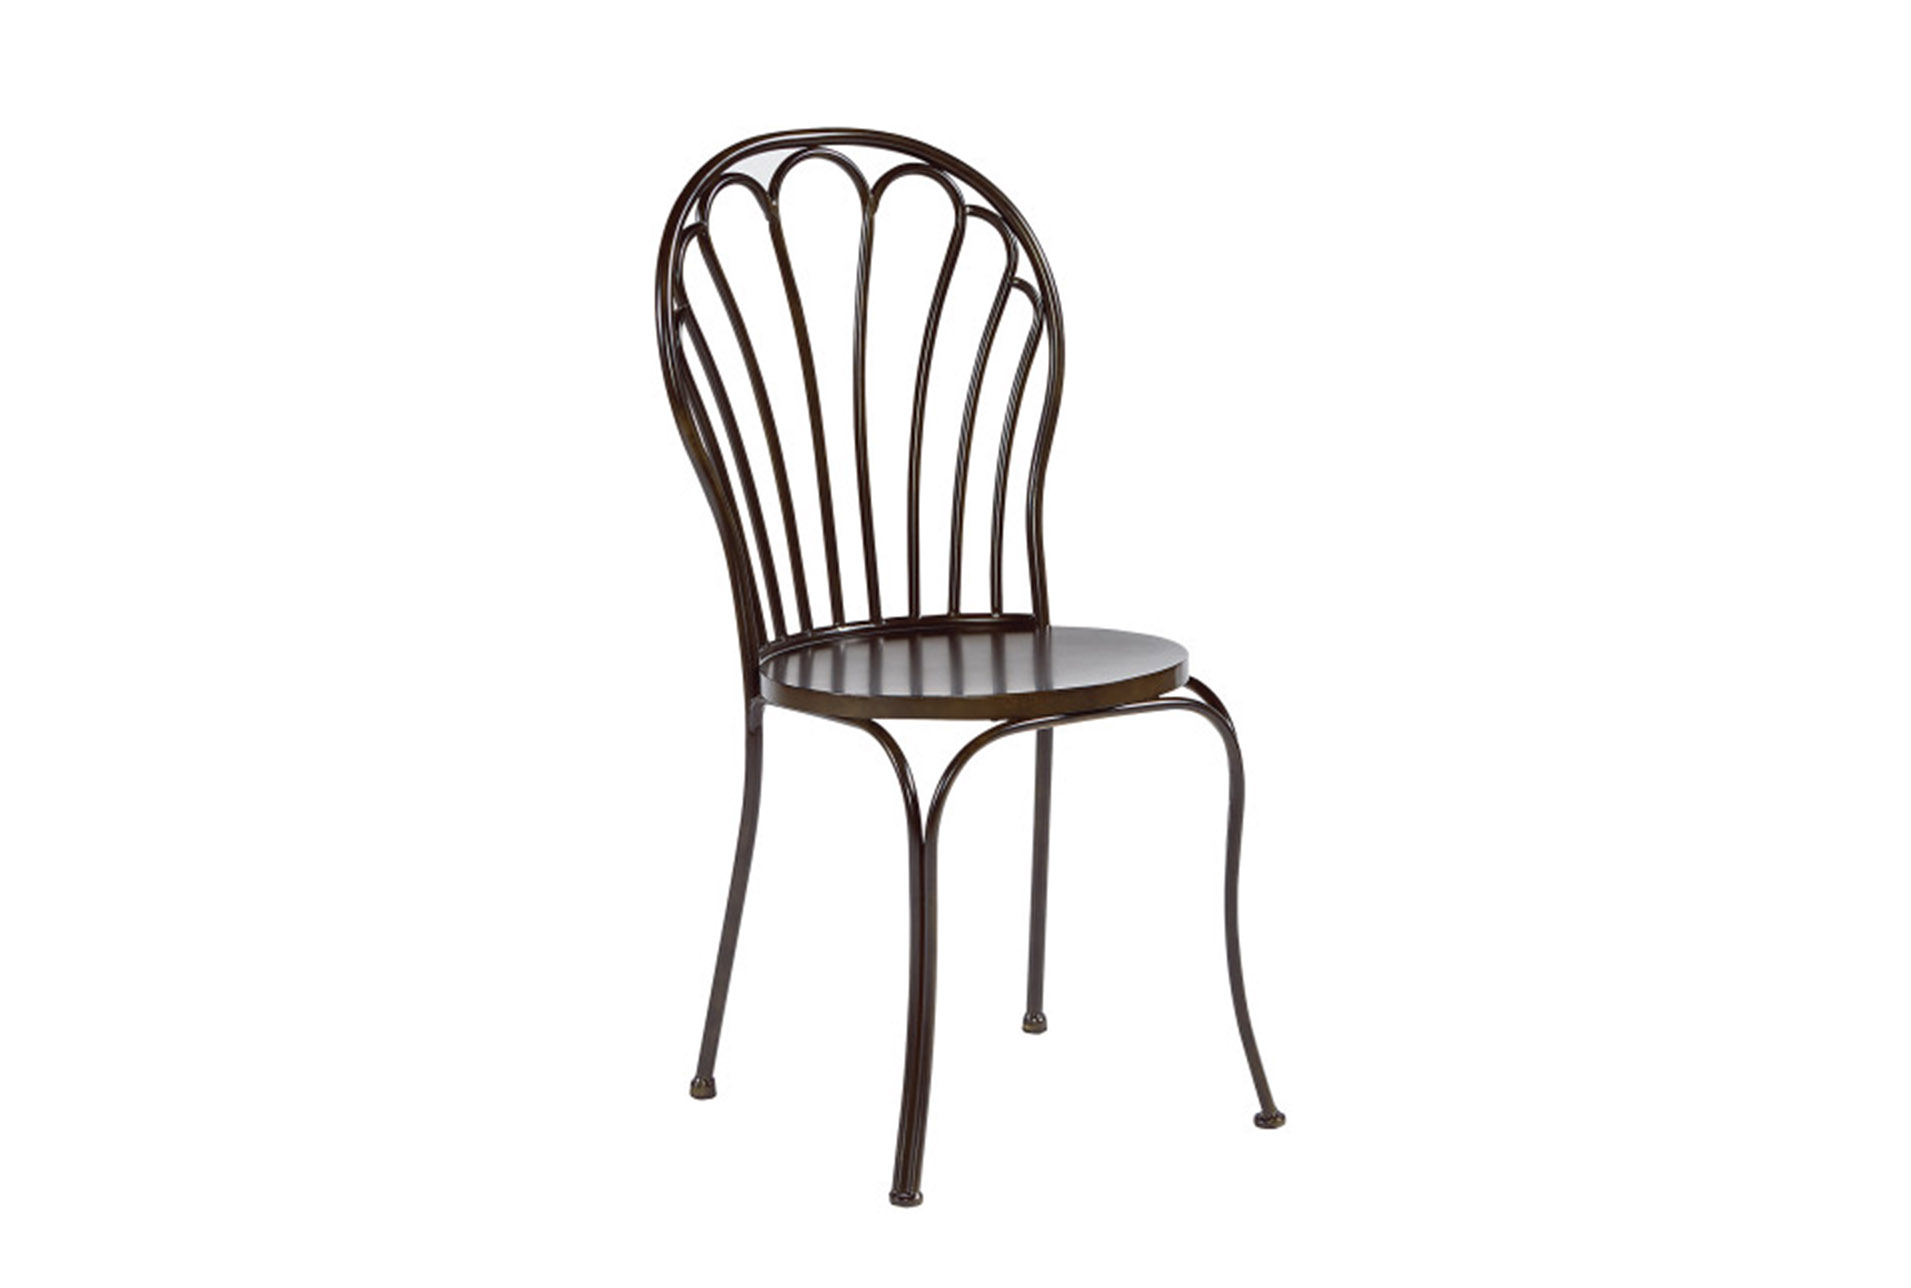 Magnolia Home Peacock Blackened Bronze Metal Side Chair By Joanna Gaines  (Qty: 1) Has Been Successfully Added To Your Cart.